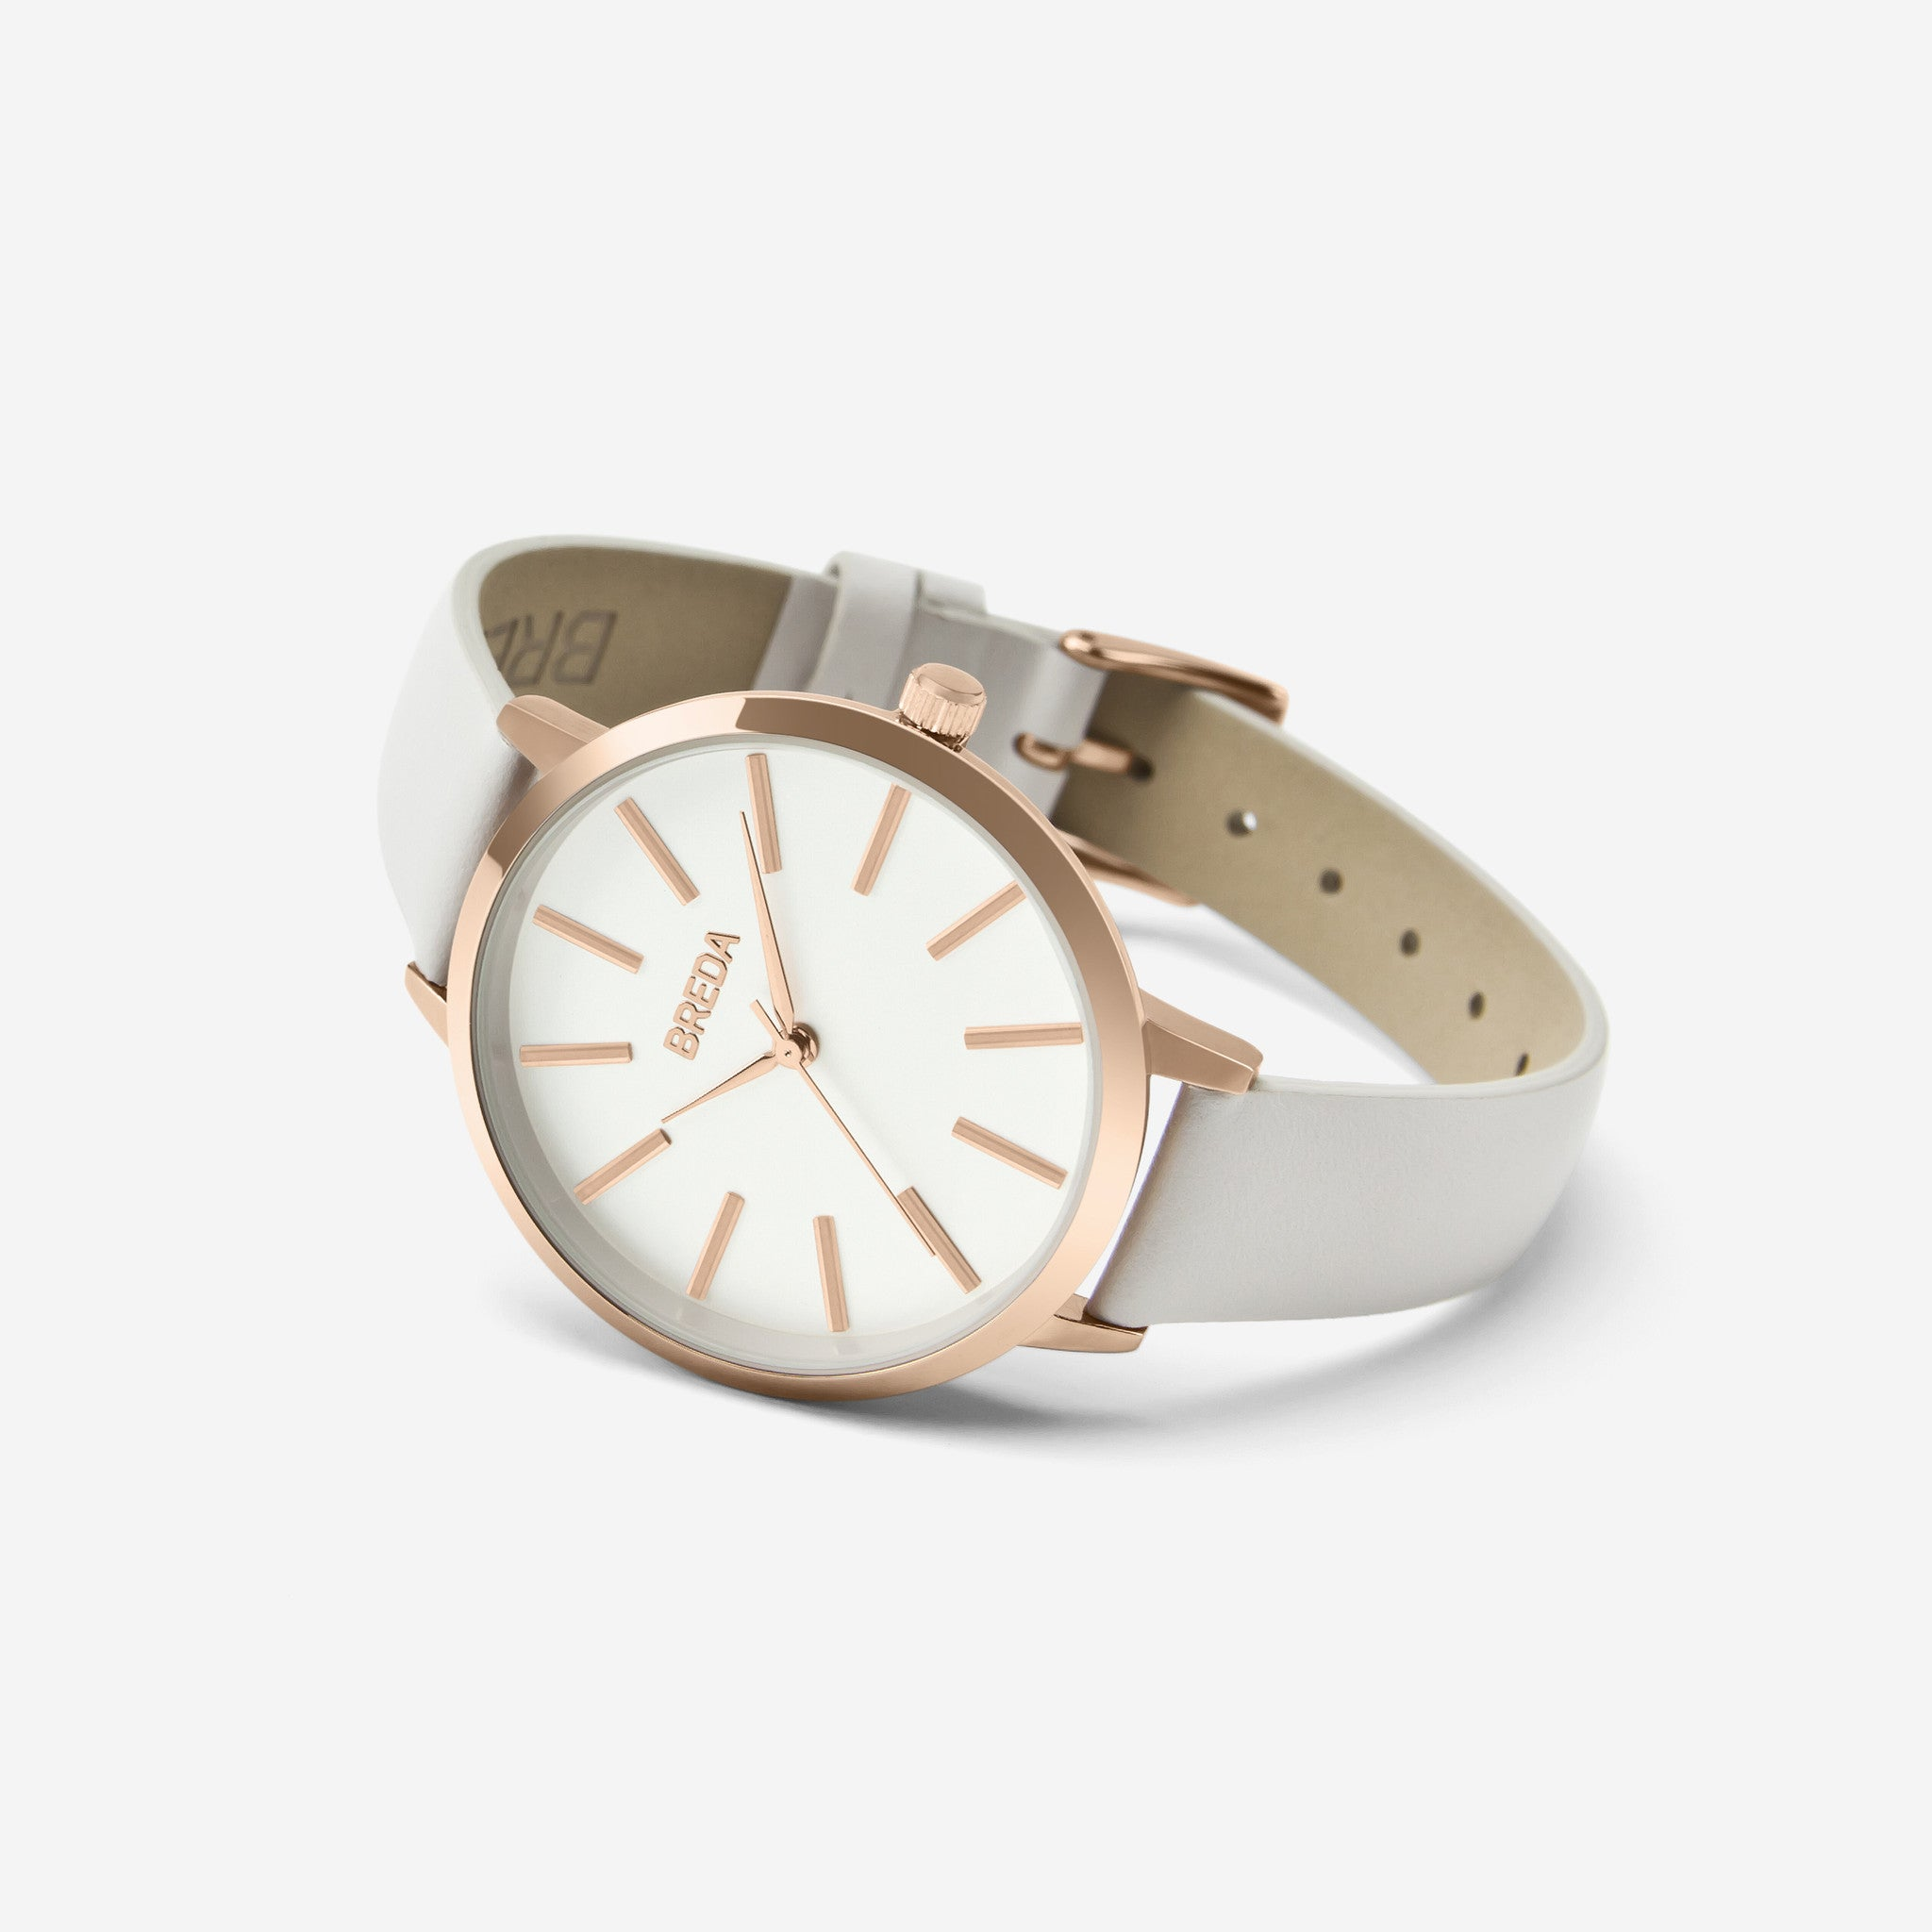 //cdn.shopify.com/s/files/1/0879/6650/products/breda-joule-1722f-rosegold-blush-watch-angle_1024x1024.jpg?v=1522790413